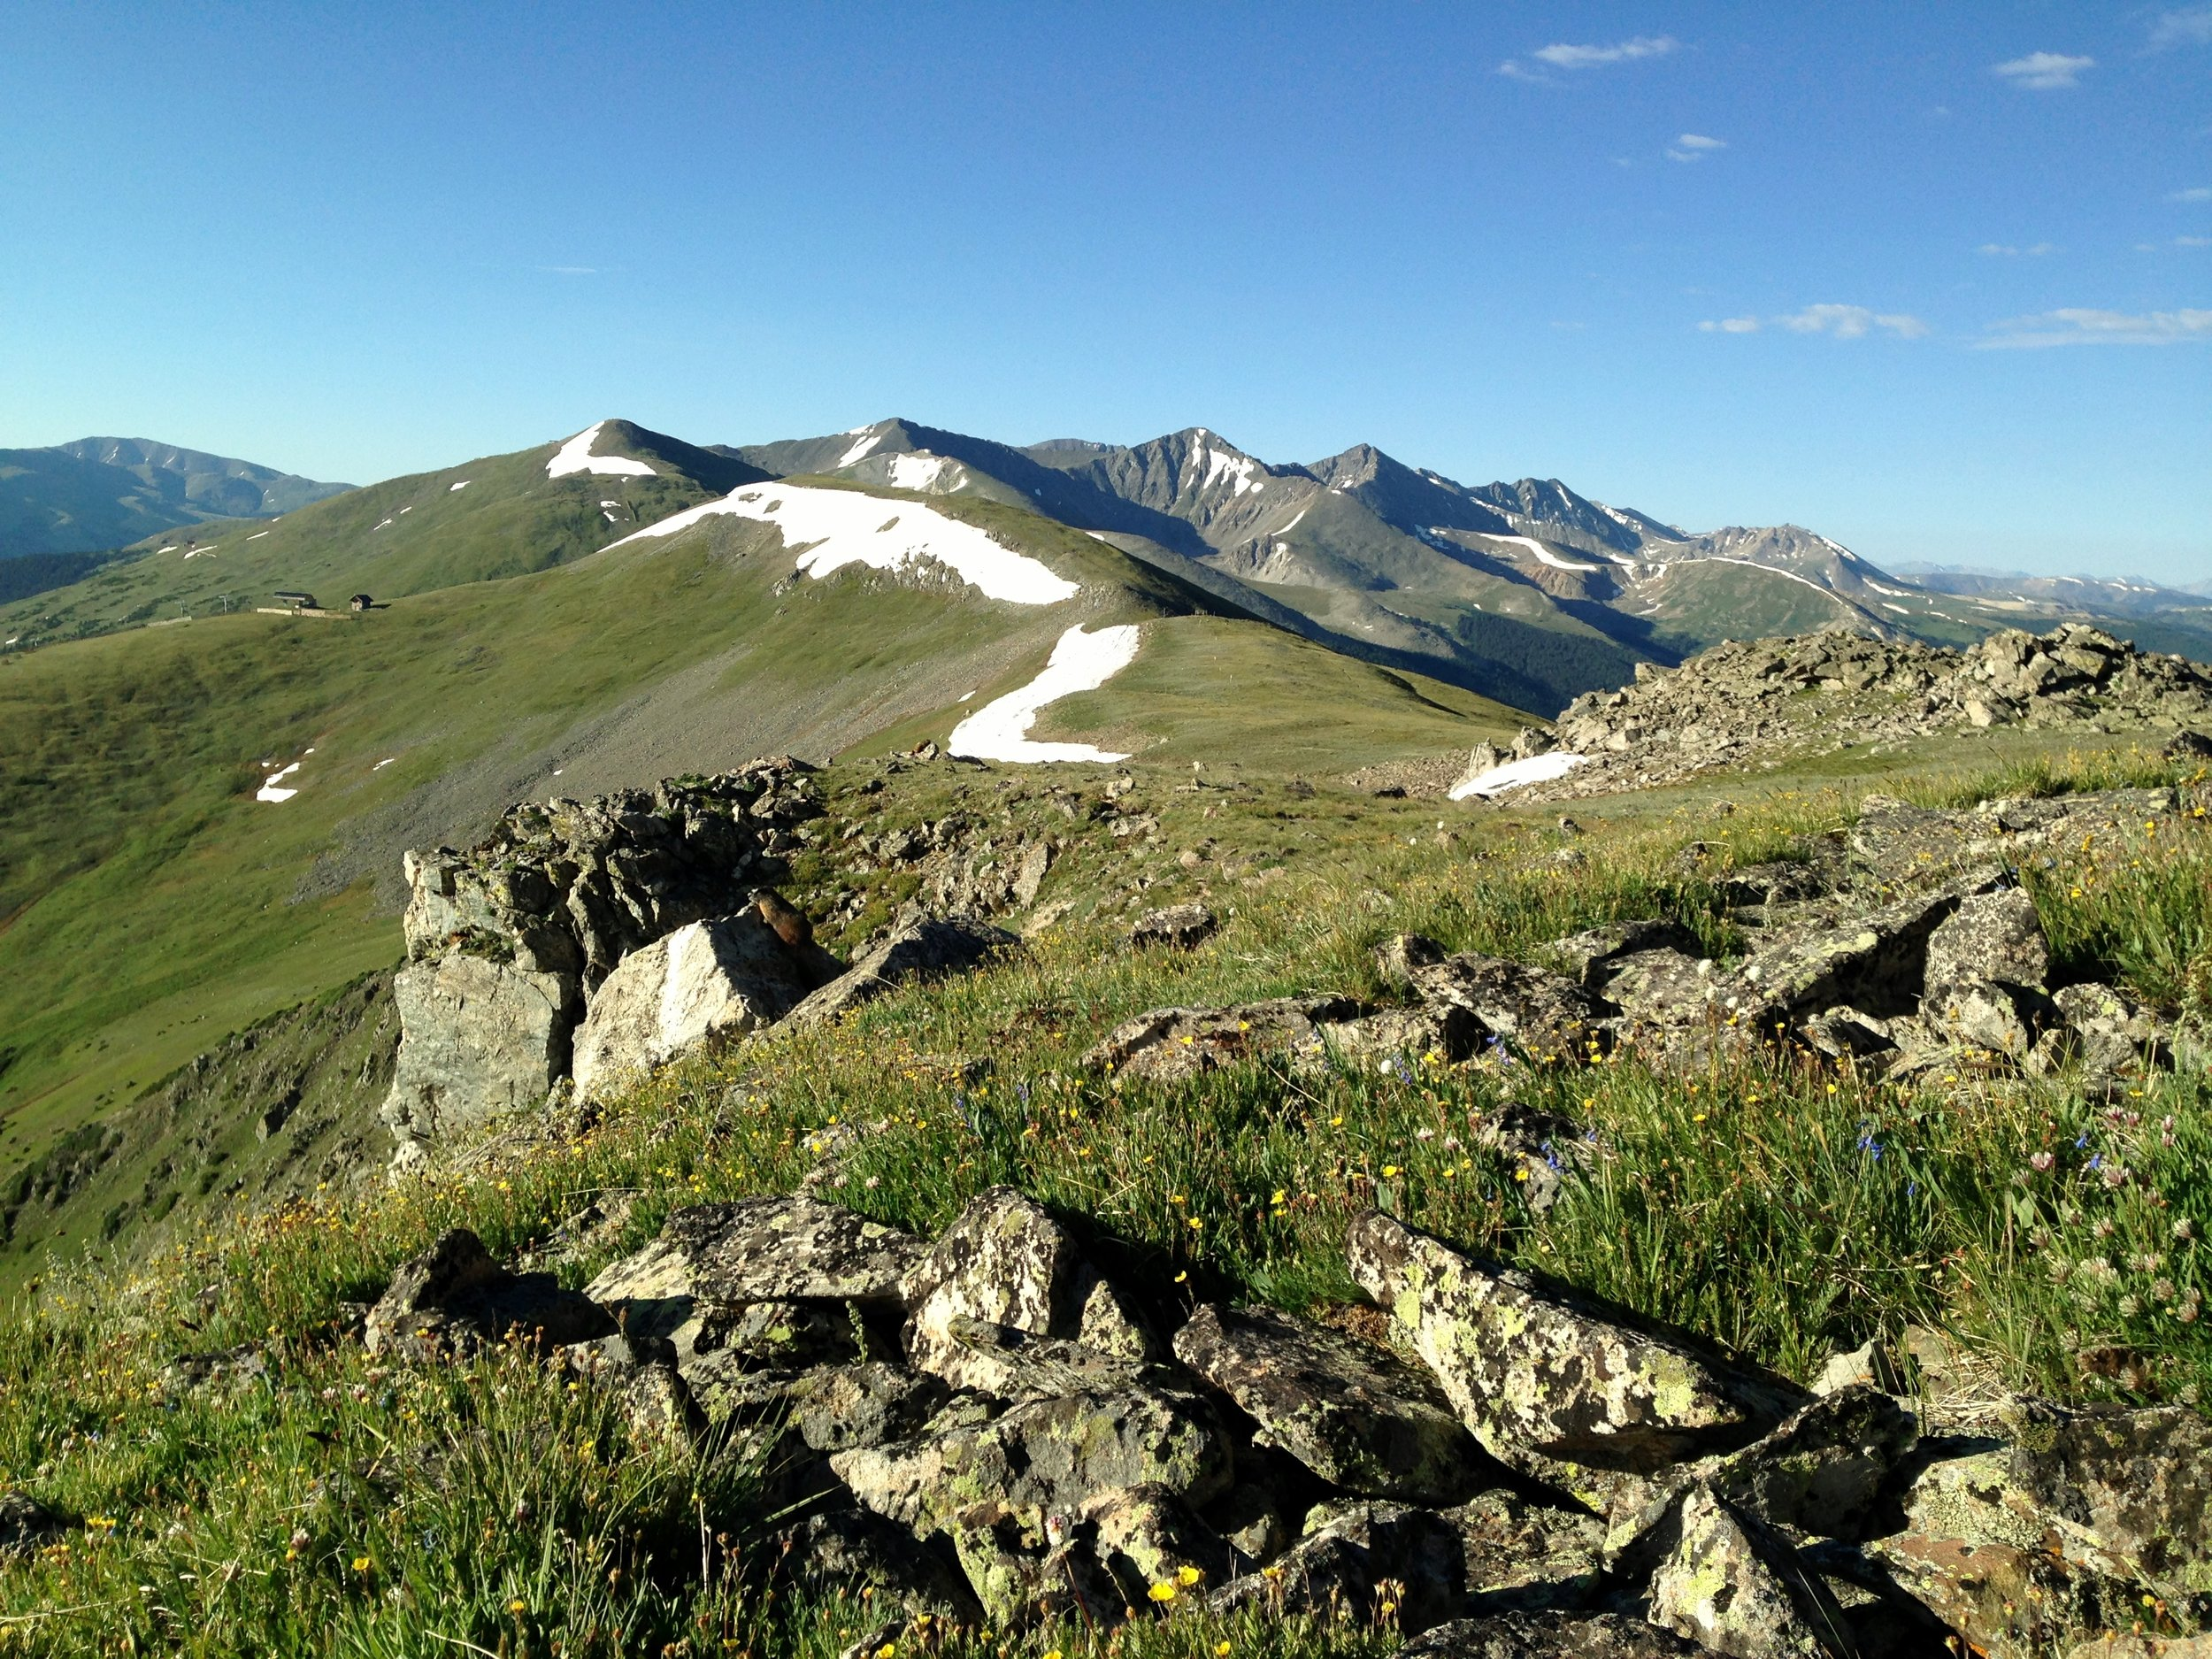 Day 10:  I hiked along the ridgeline of the Ten Mile Range on my way to Copper Mountain. Can you spot the marmot? Made the rookie mistake of packing eight days-worth of heavy food up and over these peaks.  Daily mileage: 6.1. Total miles: 110.5.